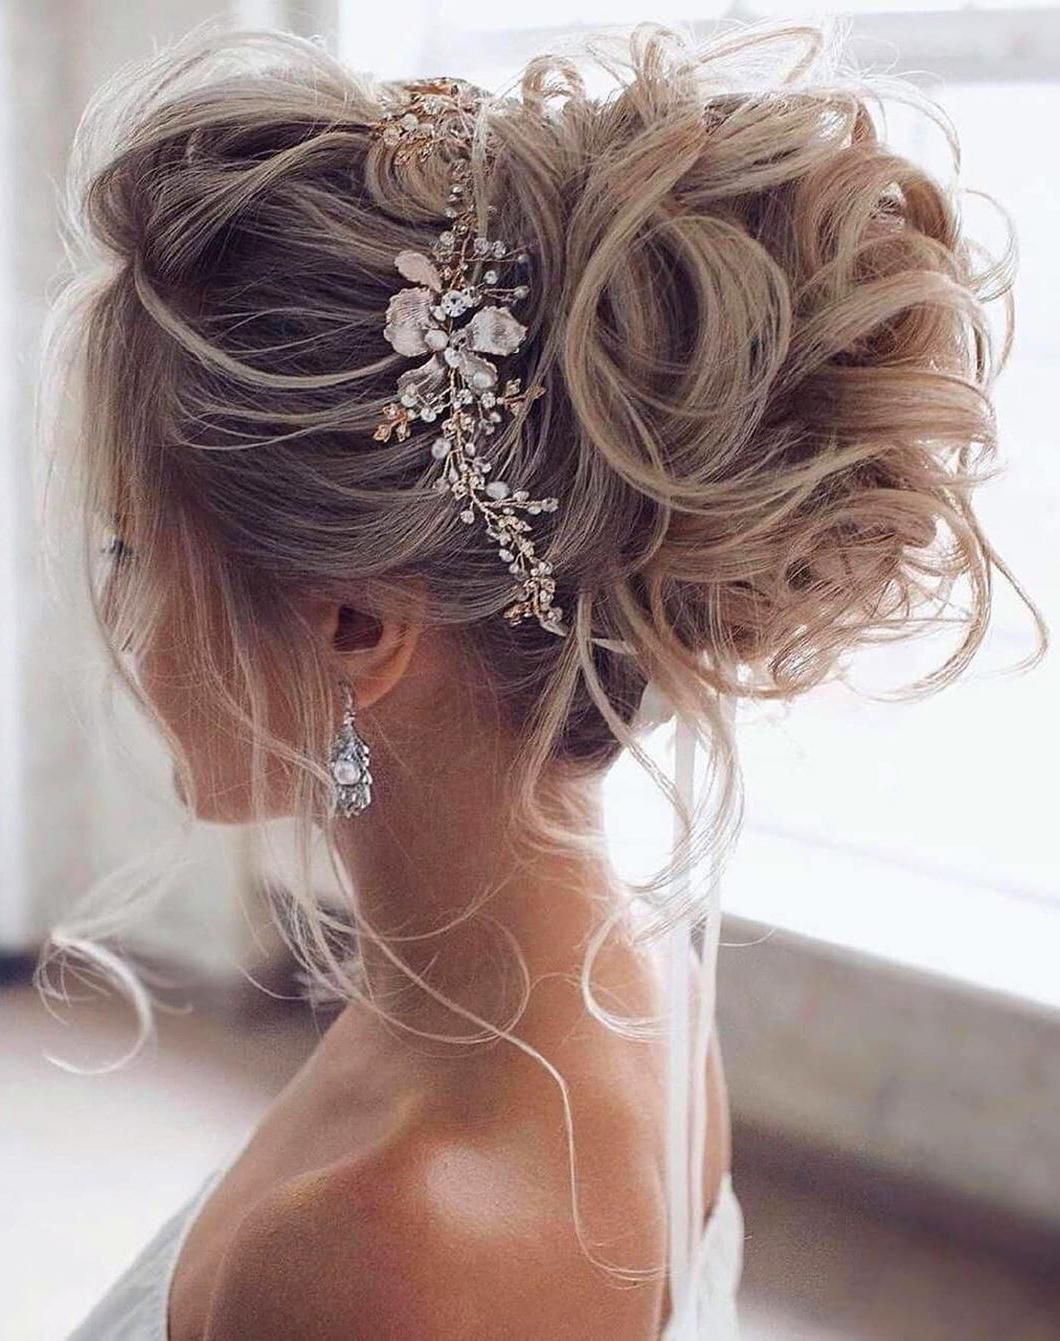 Elegant Prom Updo Wedding Hairstyles For Medium Length Hair Hair Styles Wedding Hair Inspiration Wedding Hairstyles Updo